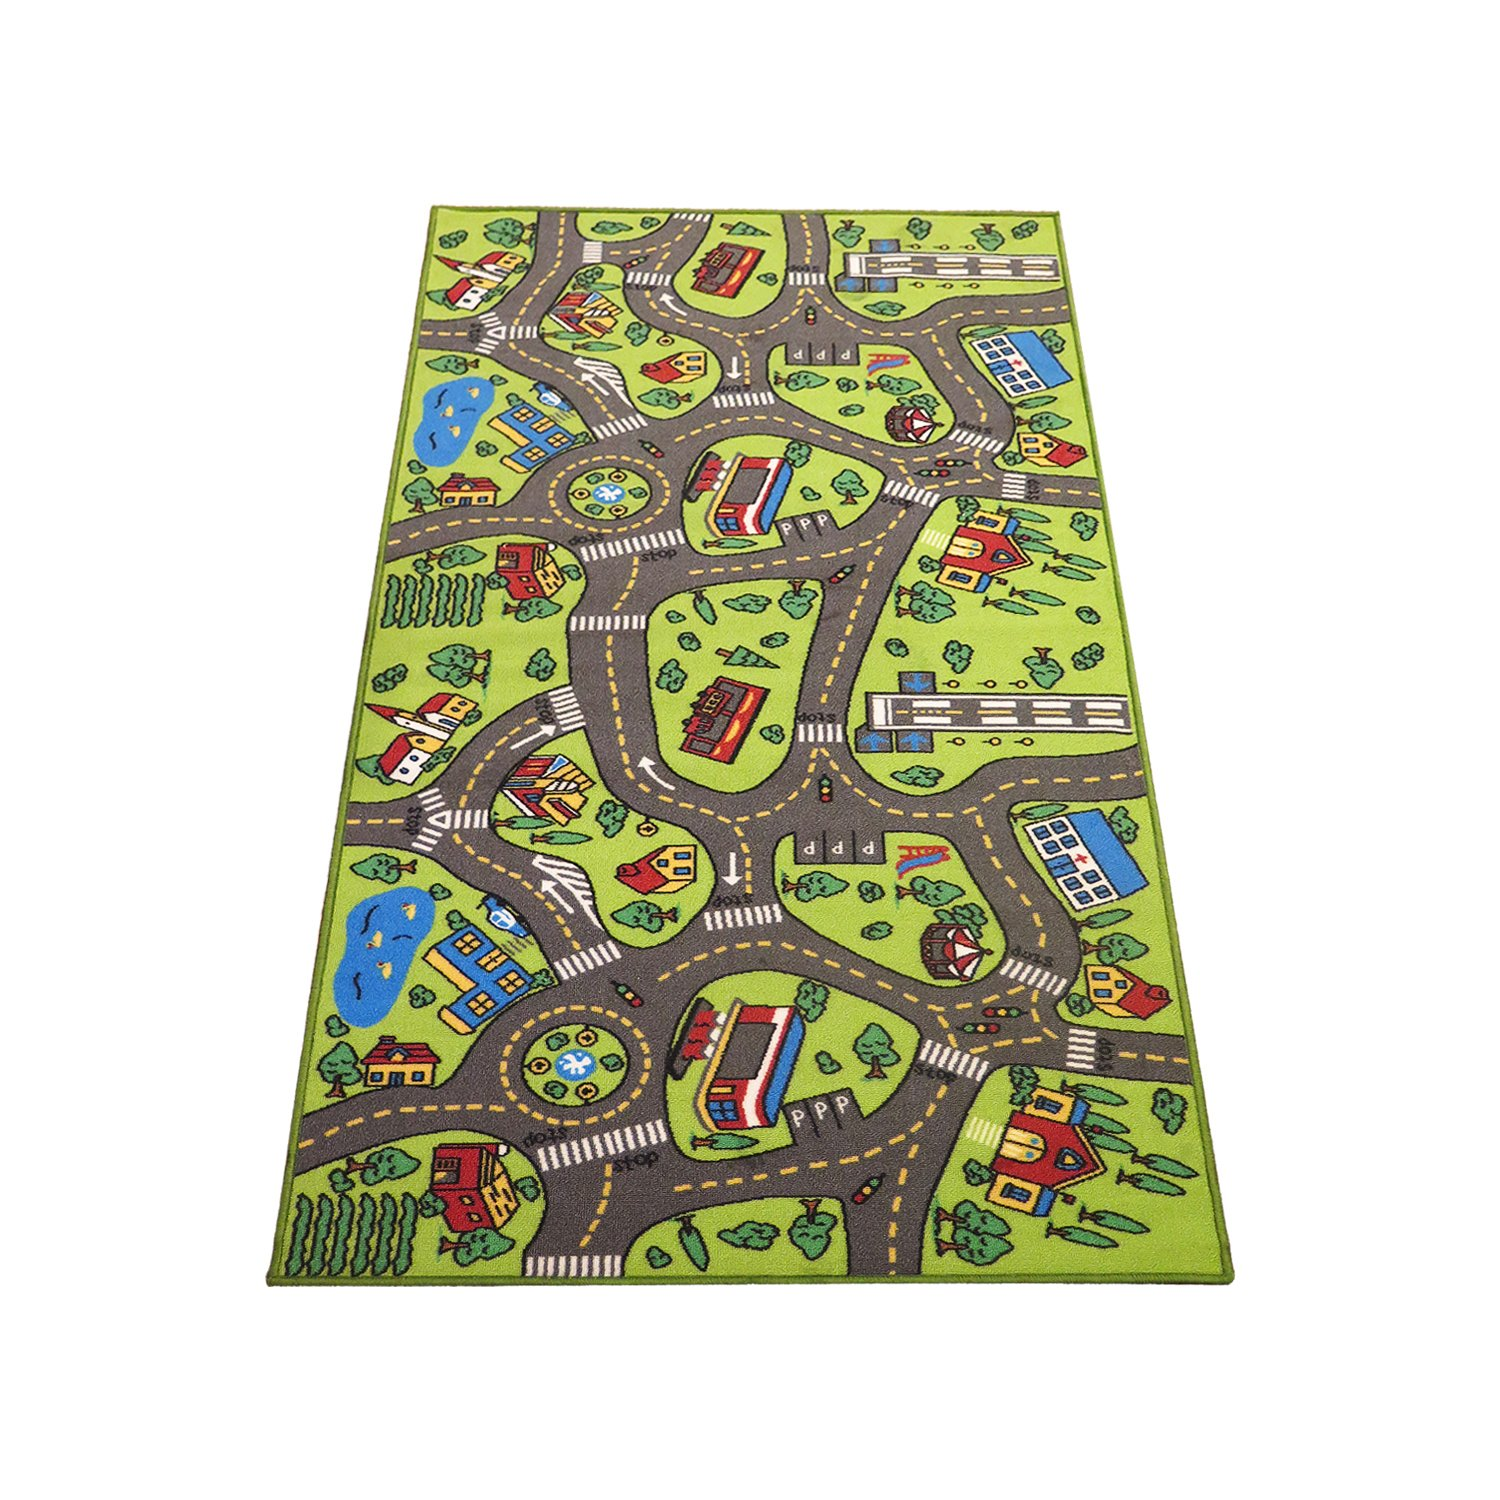 Kids Carpet Playmat Rug City Life  Great For Playing With Cars   Toys    Play Safe Learn Educational   Have Fun  Ideal Gift For Children Baby Bedroom. Shop Amazon com   Kids  Rugs